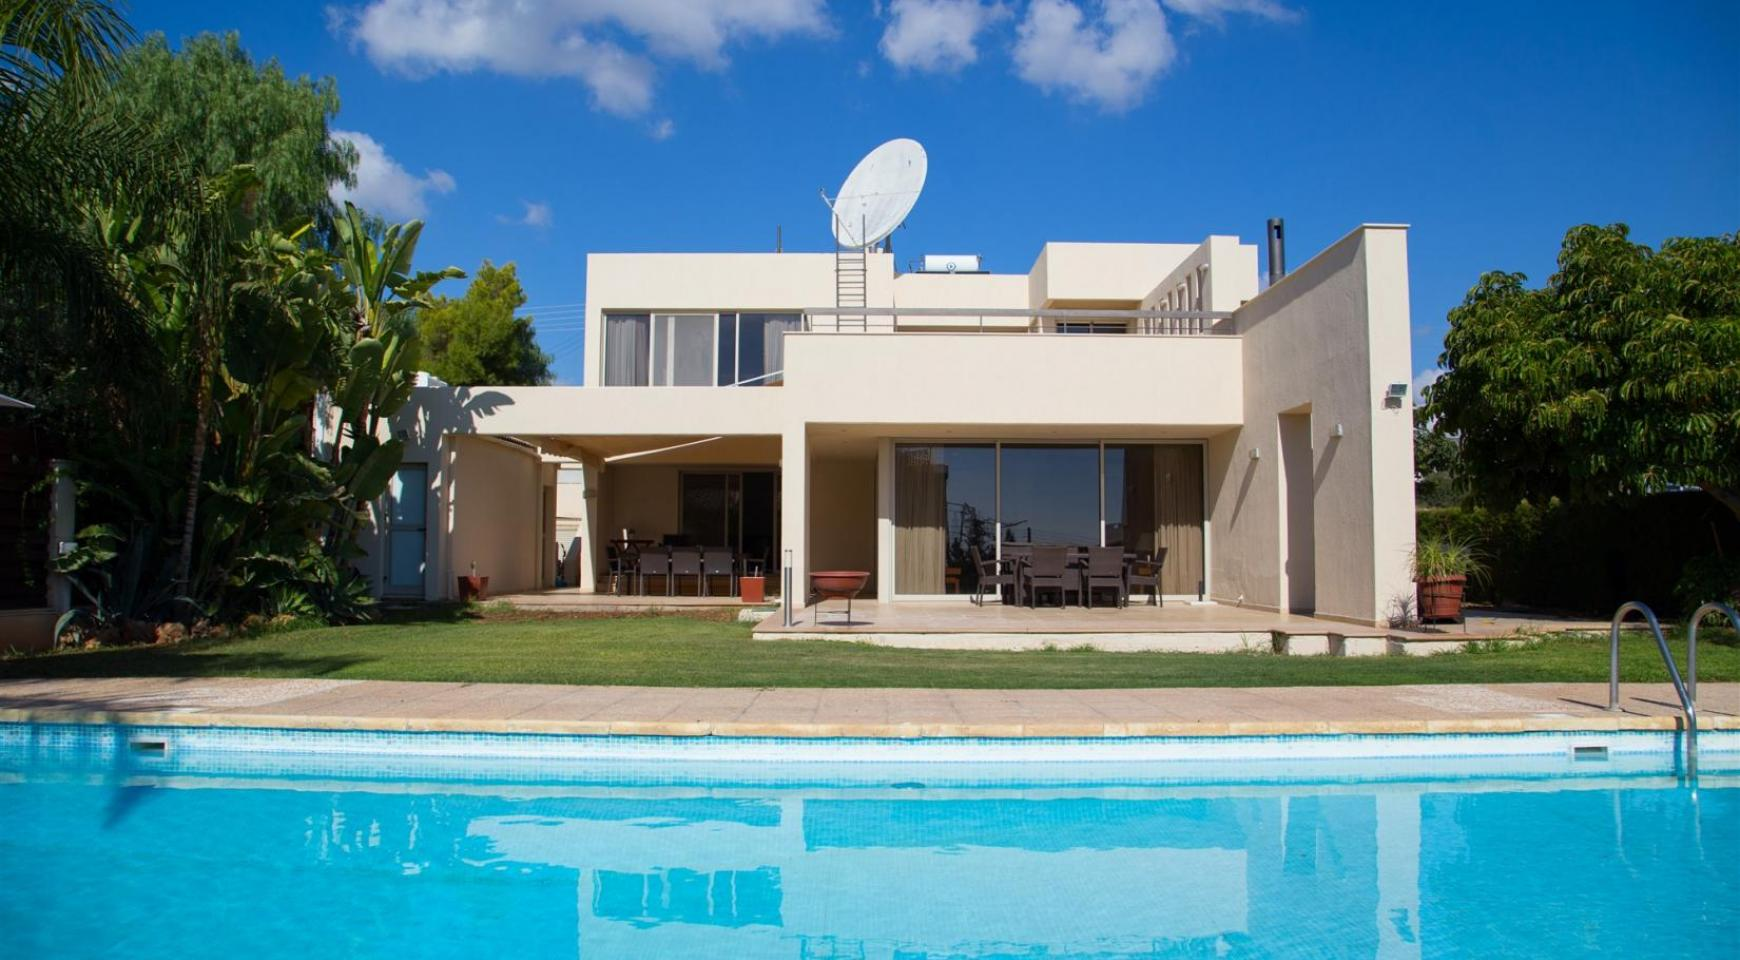 Modern Luxury 4 Bedroom Villa in Sfalagiotisa, Agios Athanasios - 2